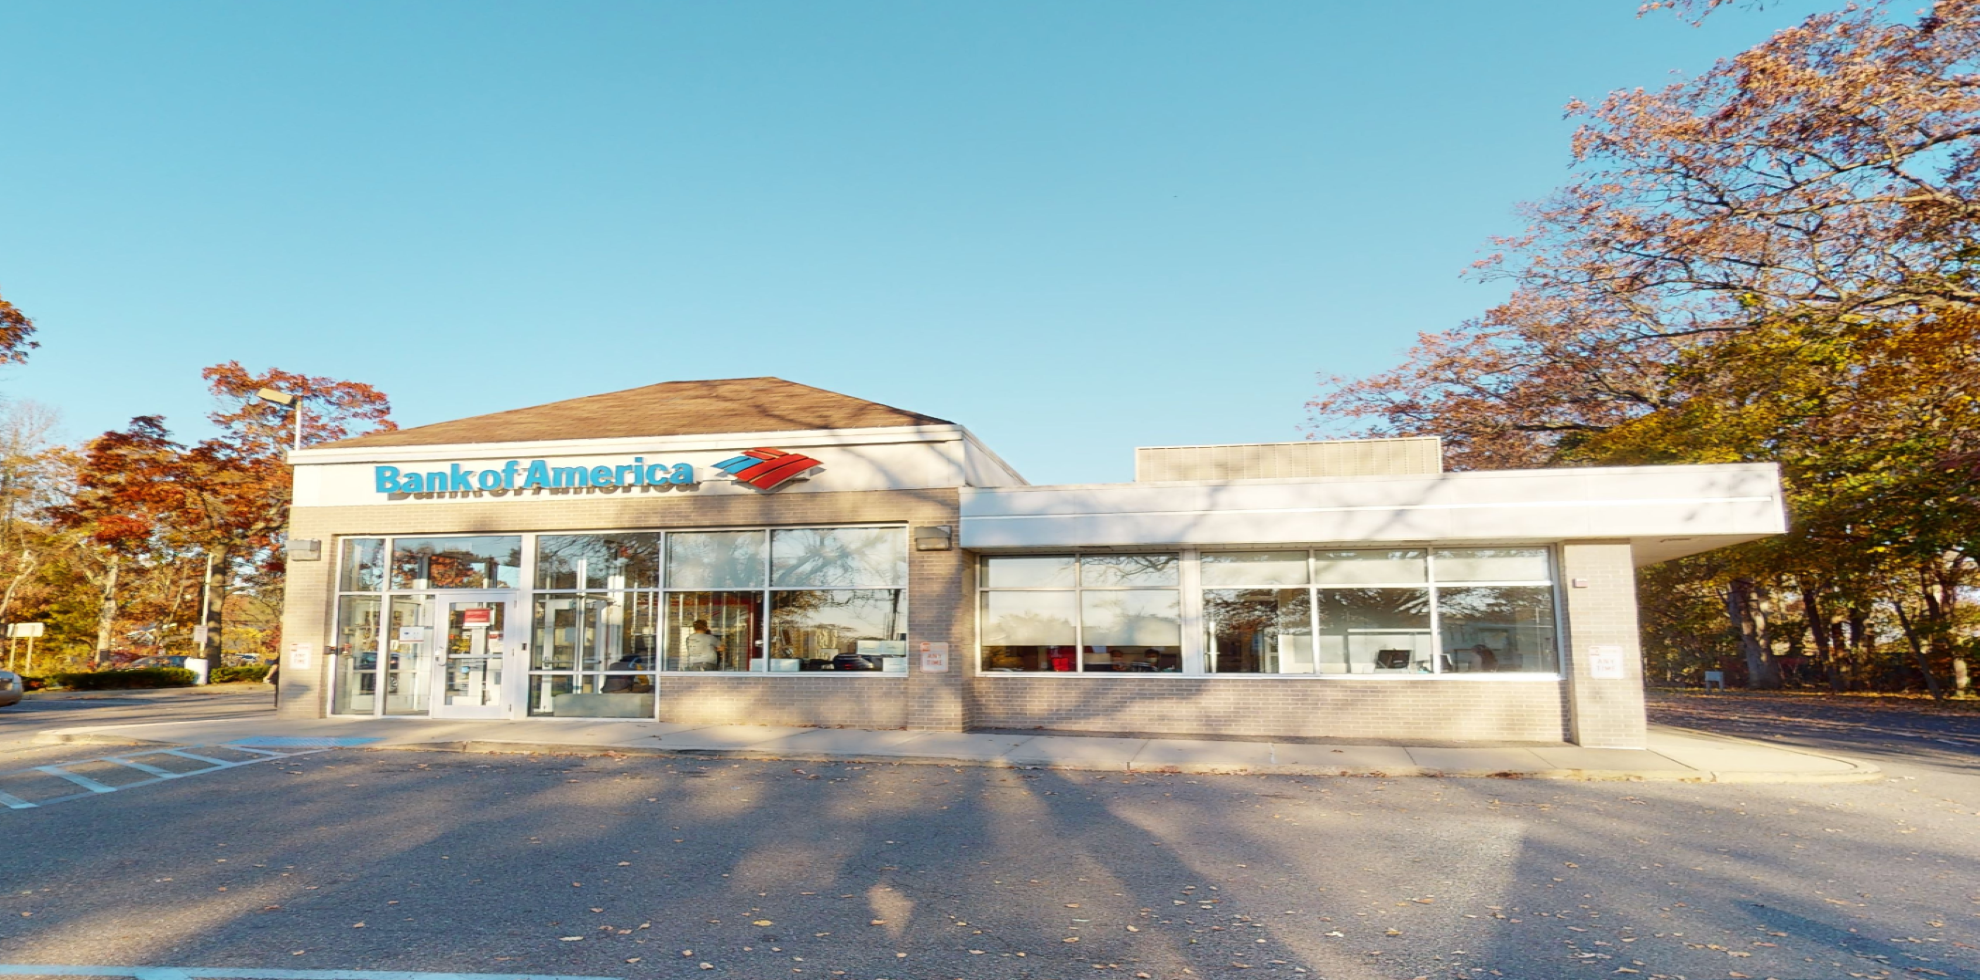 Bank of America financial center with drive-thru ATM | 185 Wheeler Rd, Central Islip, NY 11722